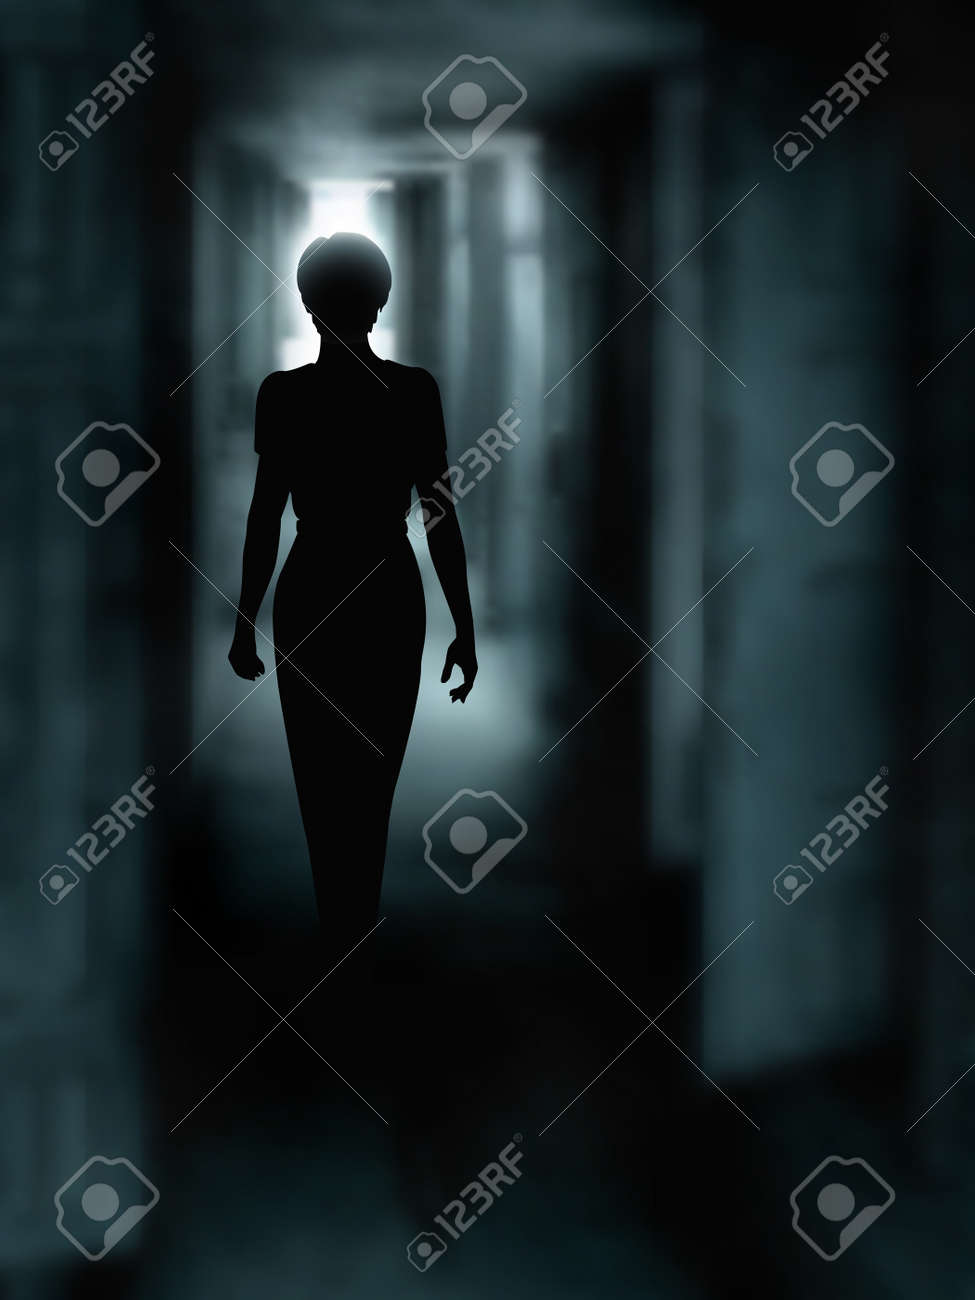 Editable vector illustration of a woman's silhouette walking down a dark passage made using a gradient mesh - 17015742